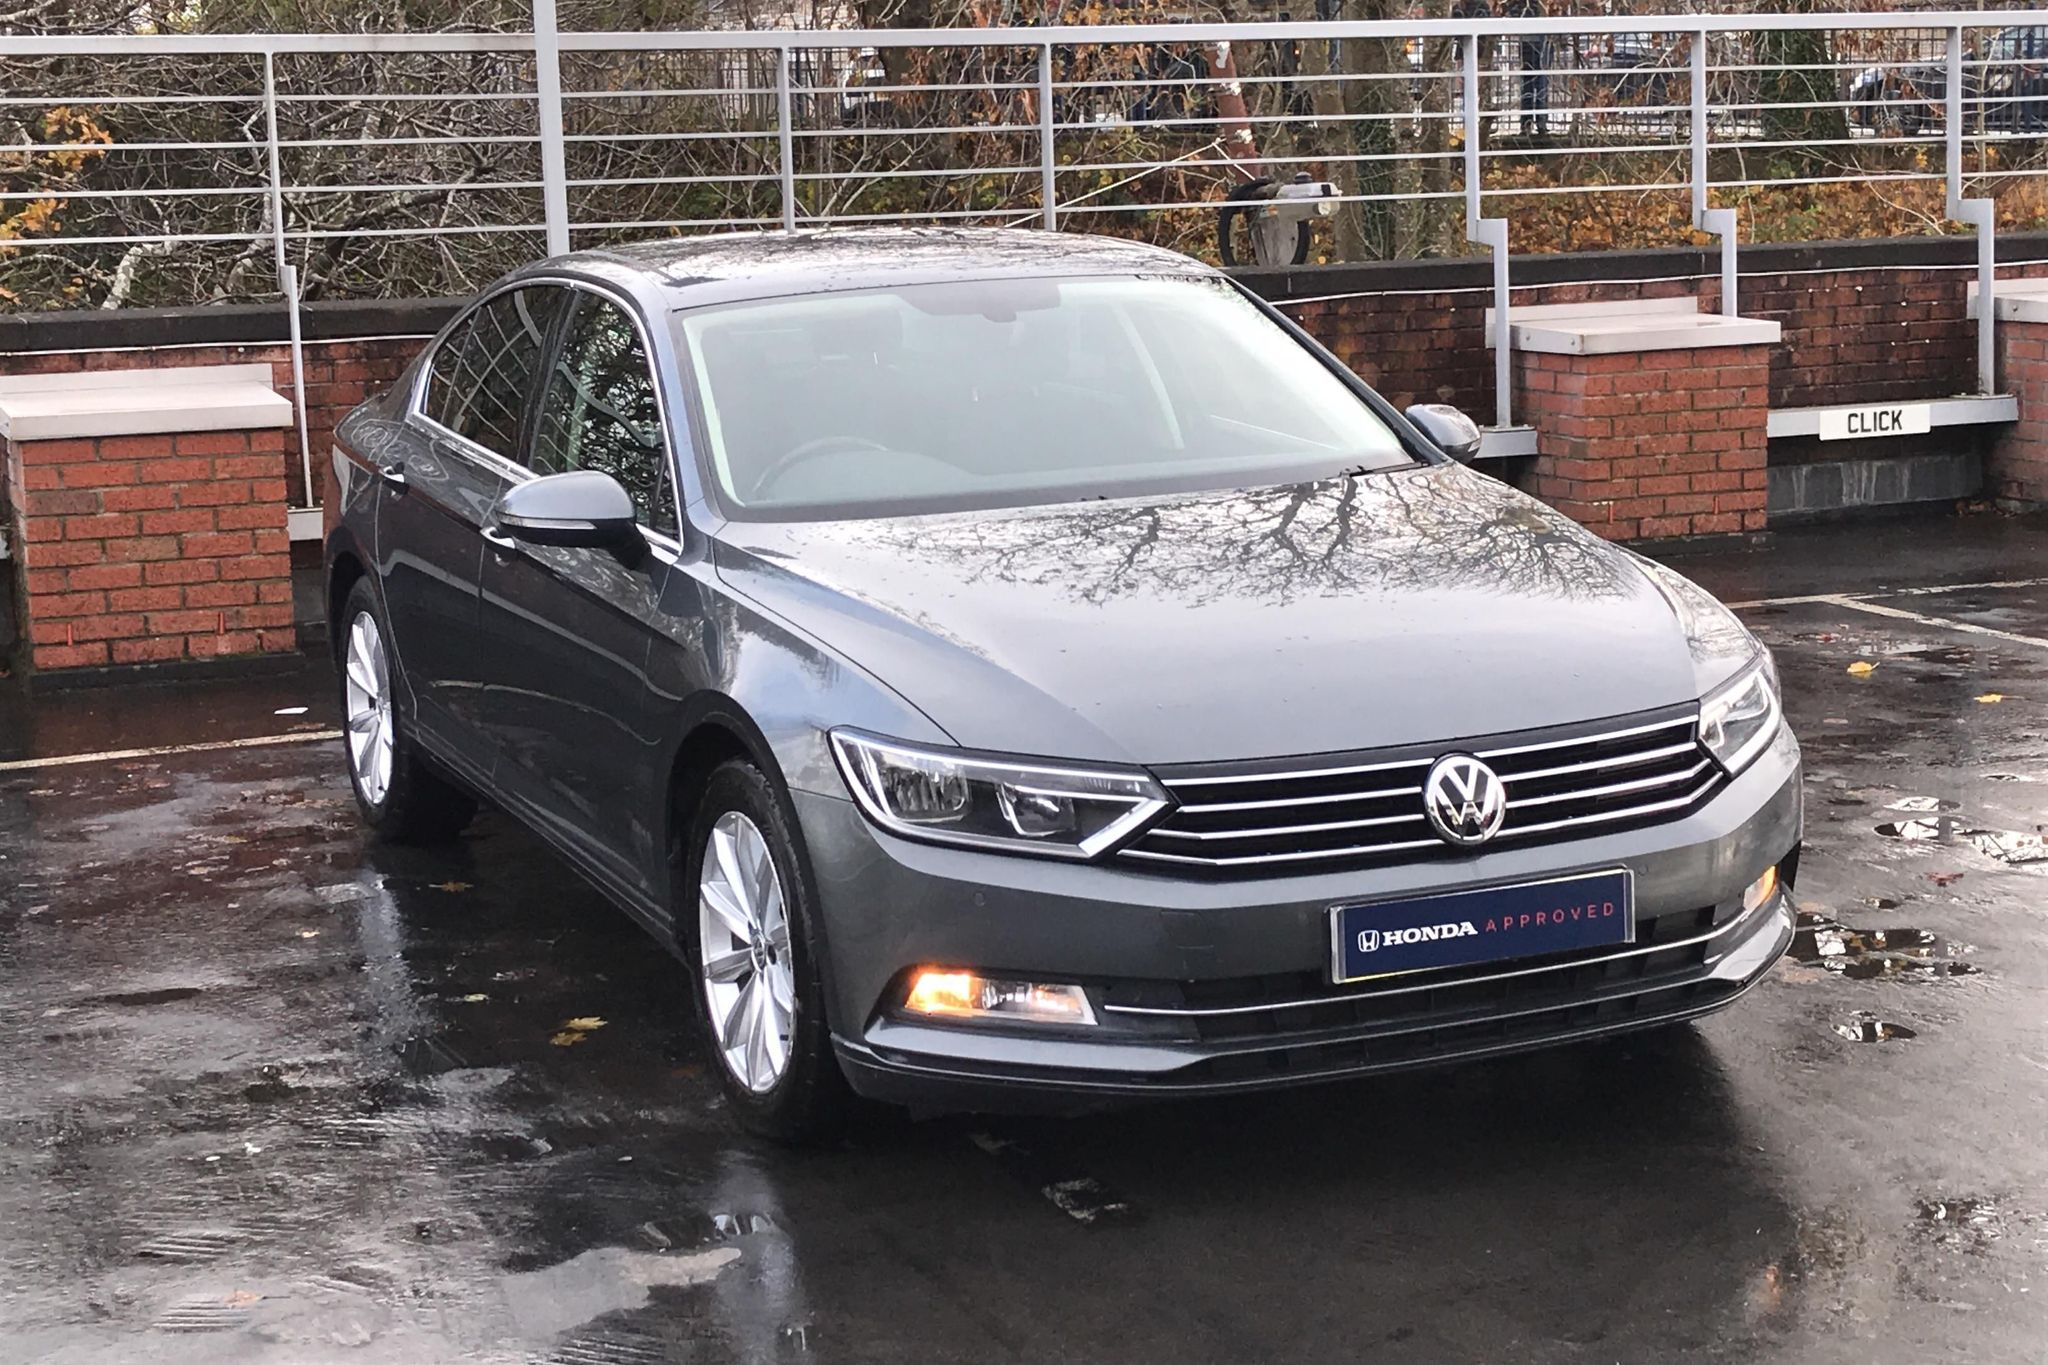 Volkswagen Passat 1.6 TDI BlueMotion Tech SE Business (s/s) 4dr